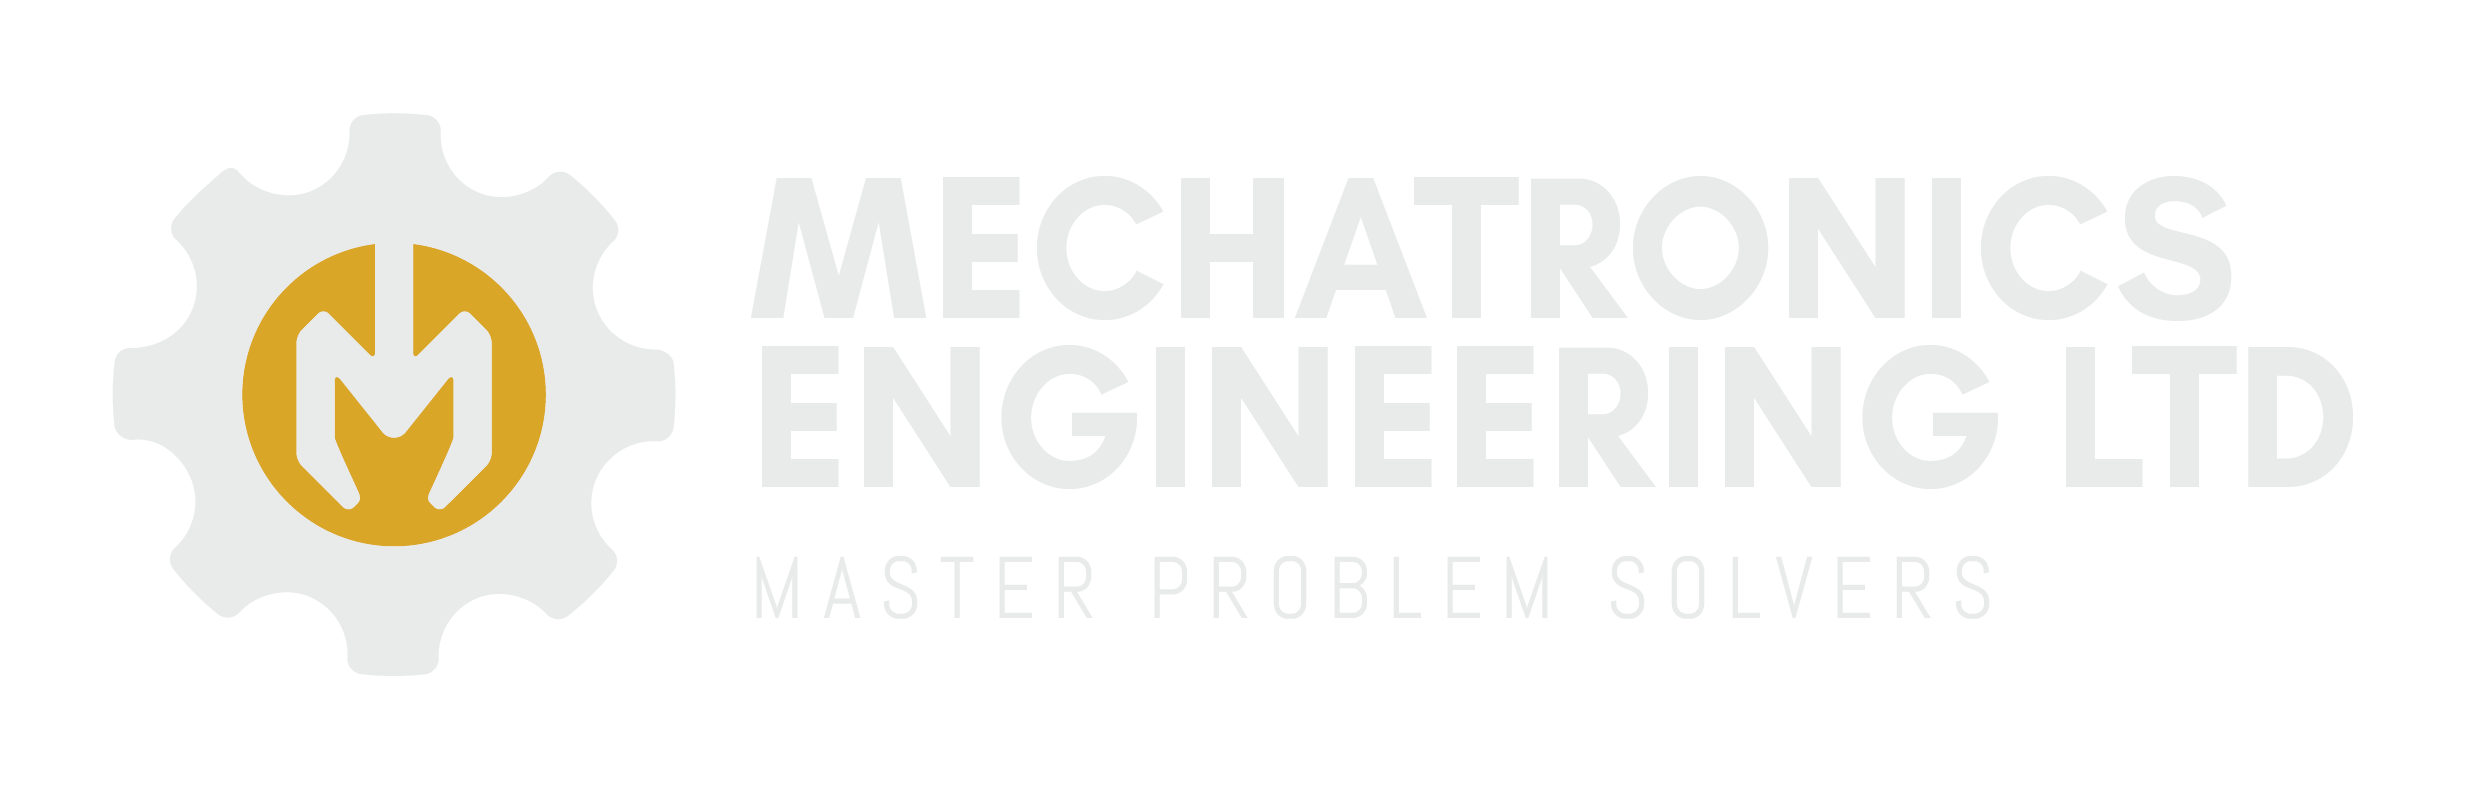 Mechatronics Engineering Ltd.